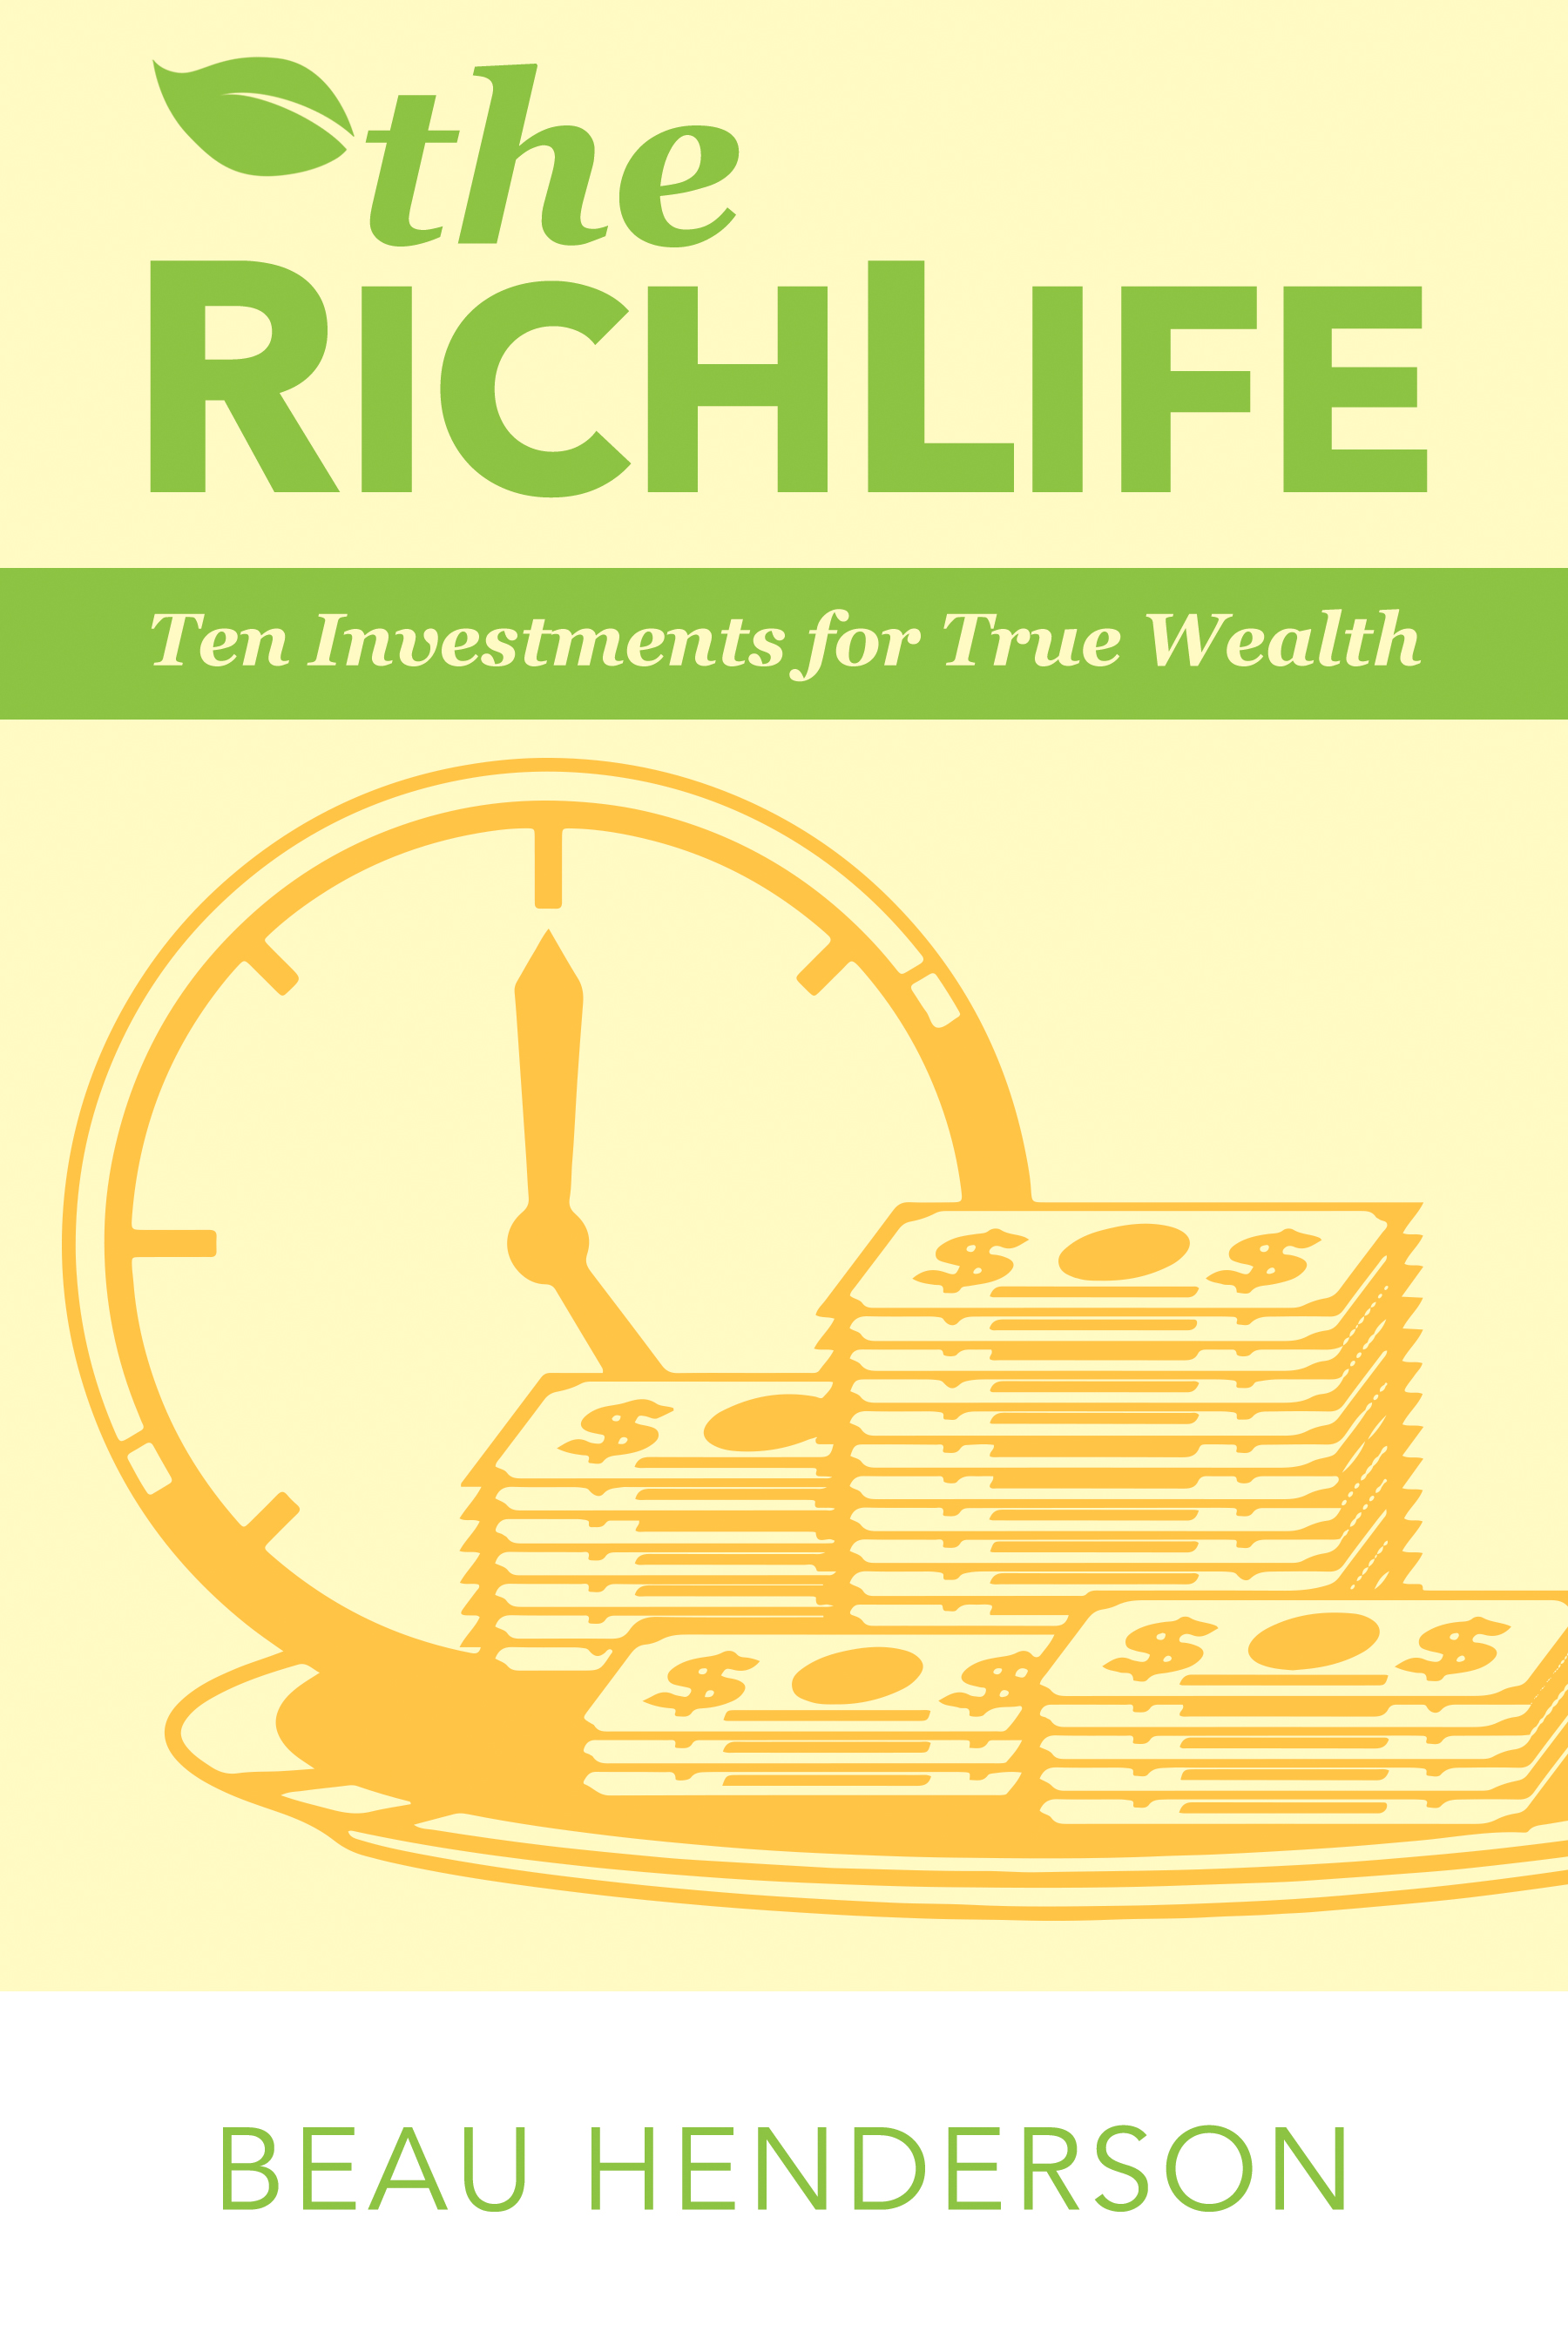 The RichLife - By beau henderson